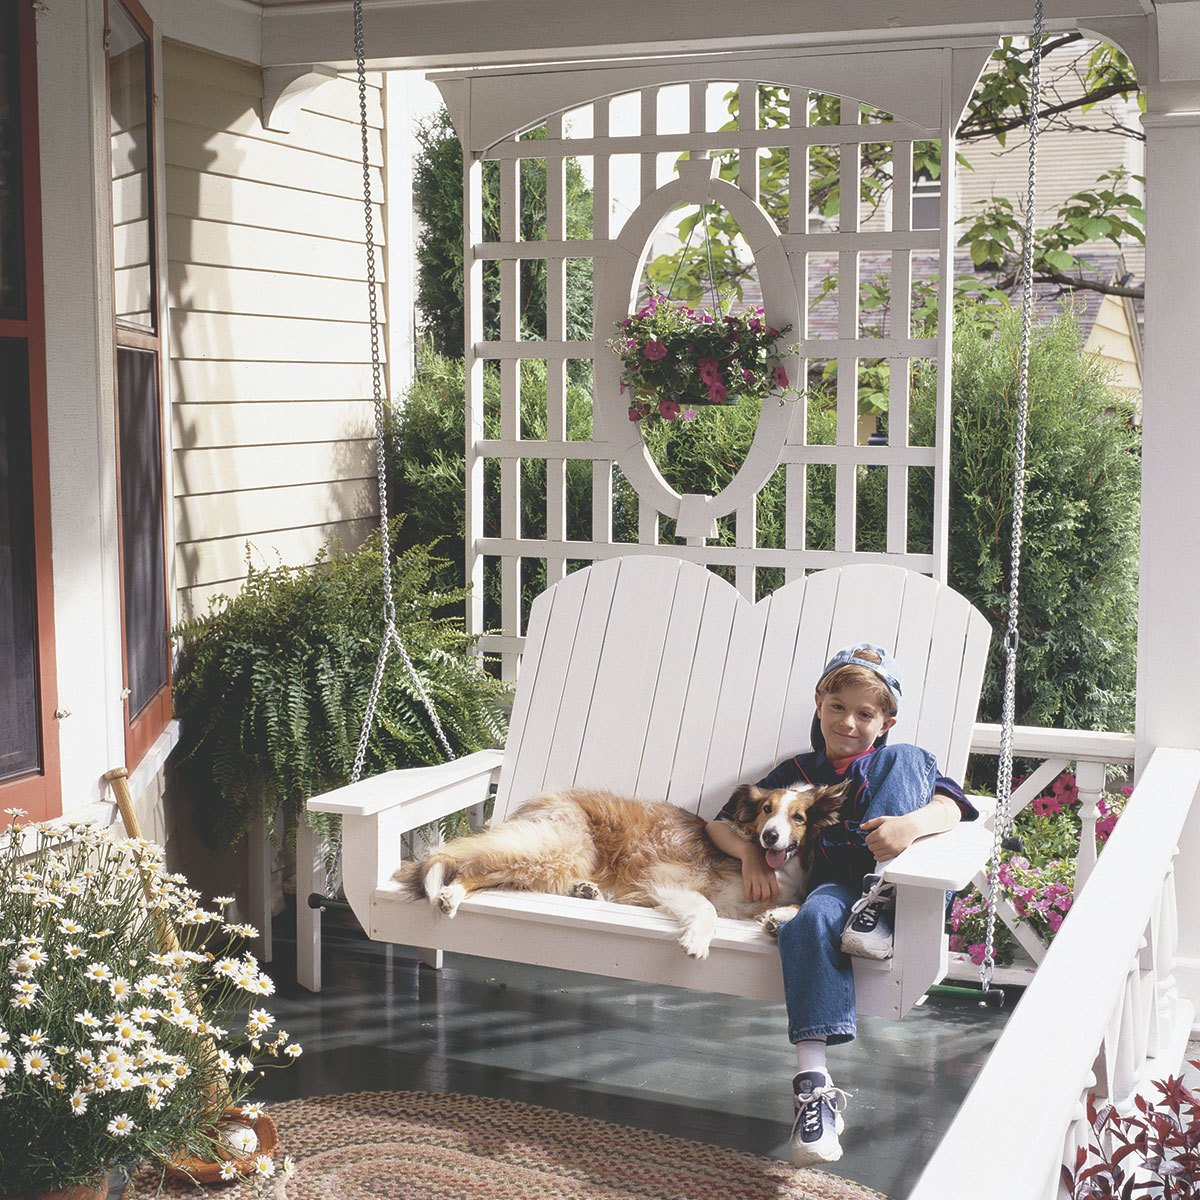 10 Pretty Porch Swings – The Family Handyman Throughout Contoured Classic Porch Swings (View 17 of 25)